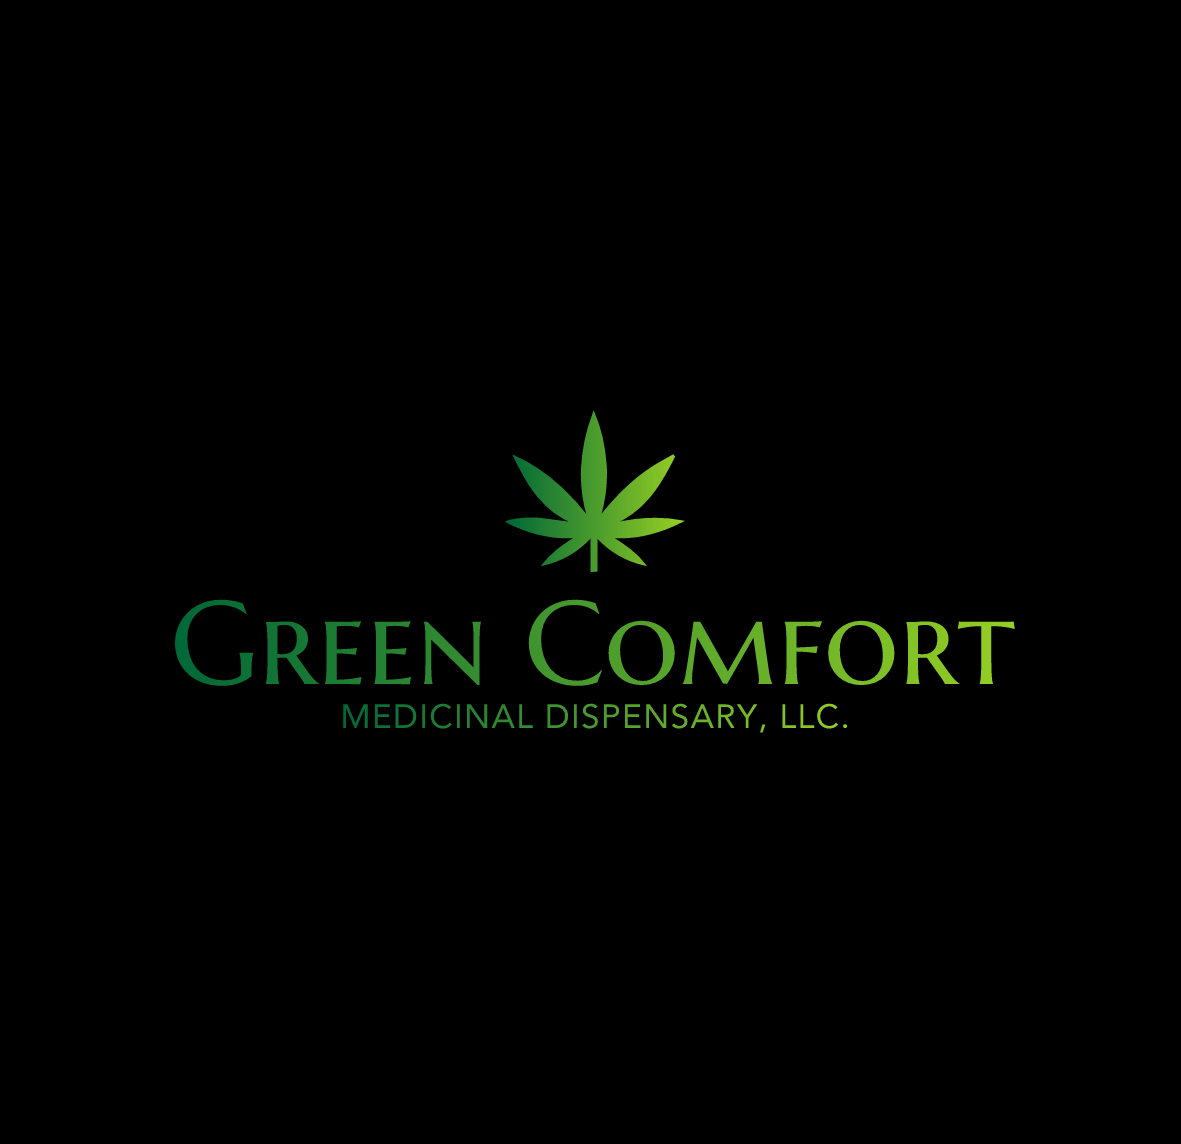 Green Comfort Medicinal Dispensary, LLC.